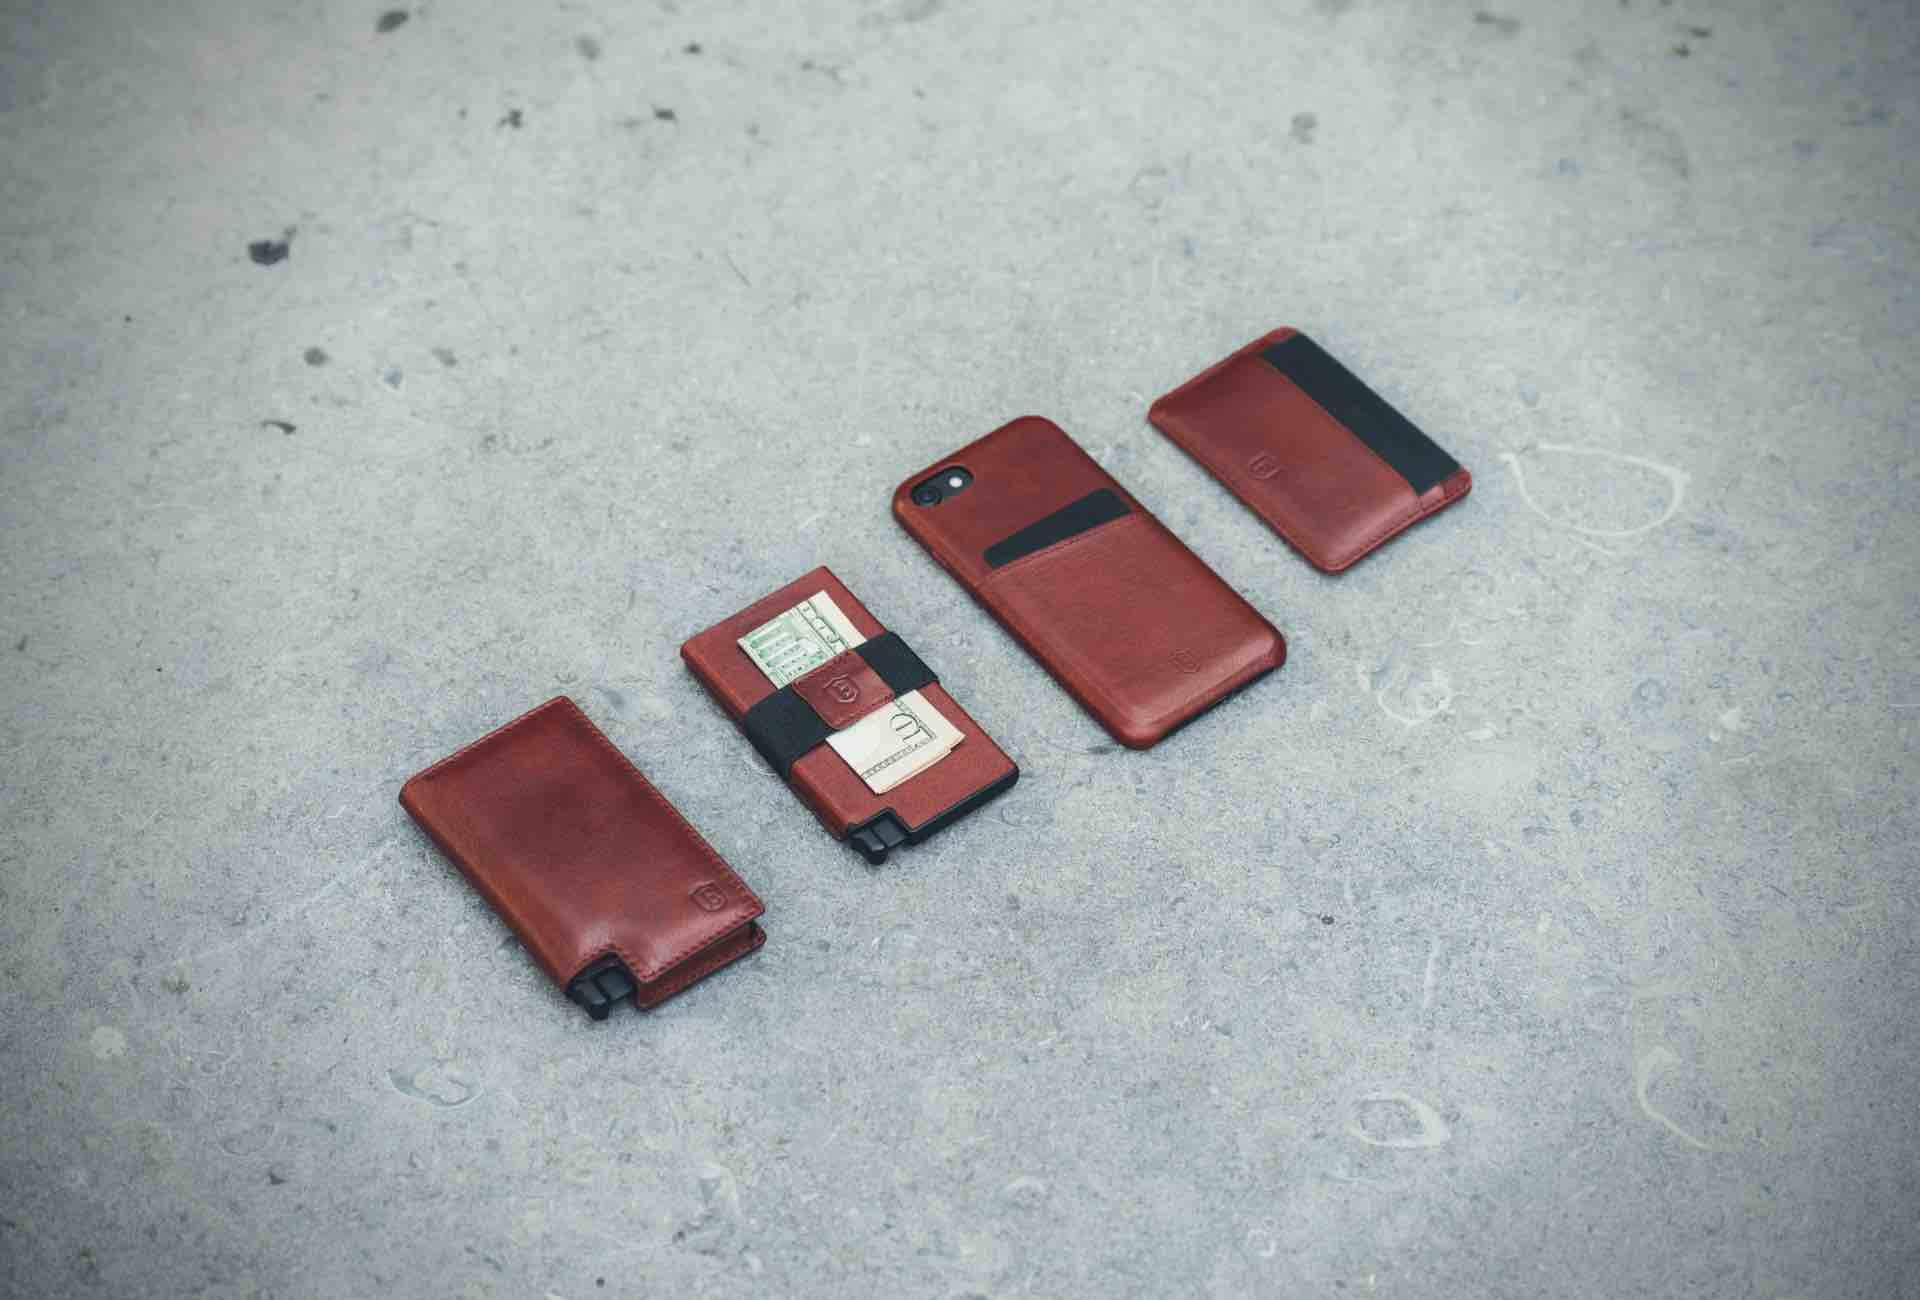 Ekster Smart Wallets, slim trackable wallets